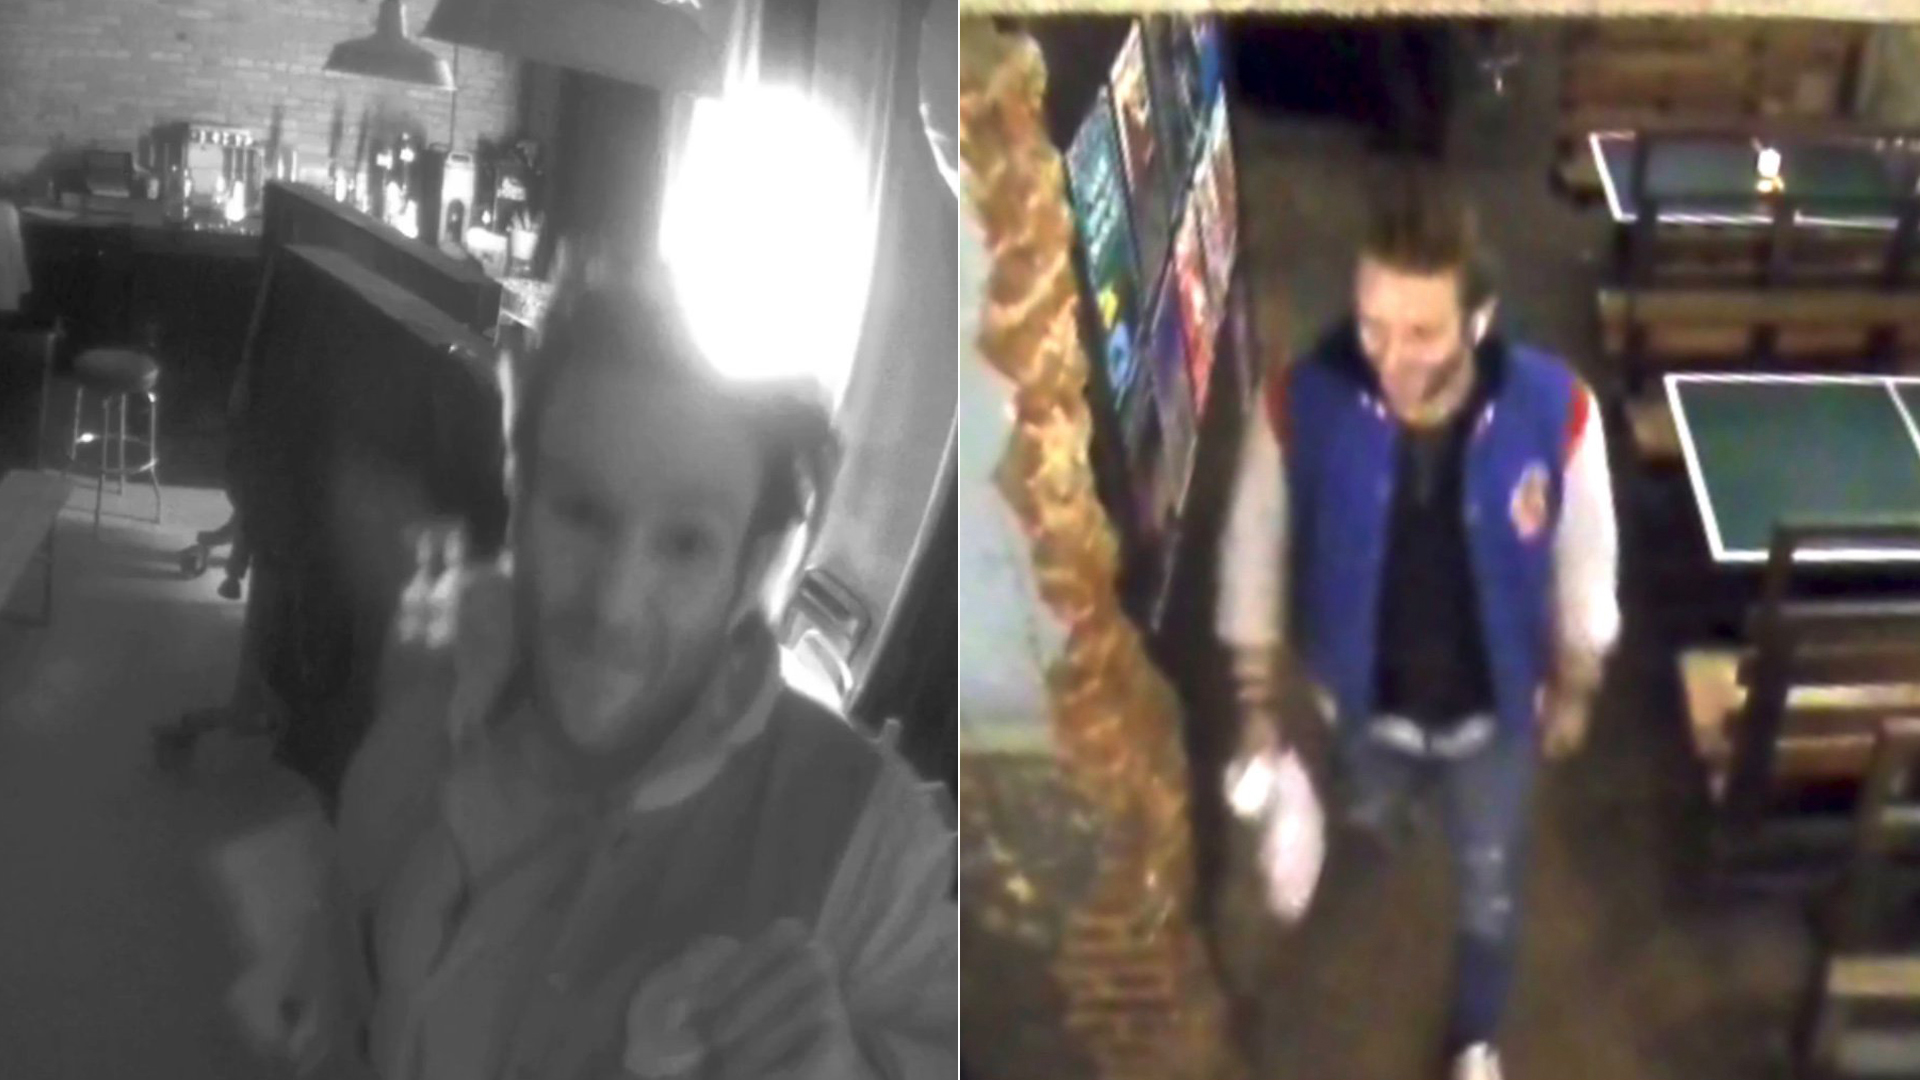 The Bureau of Alcohol, Tobacco, Firearms and Explosives released these images of a man, later identified as Ryan Jaselskis, on Jan. 29, 2019.